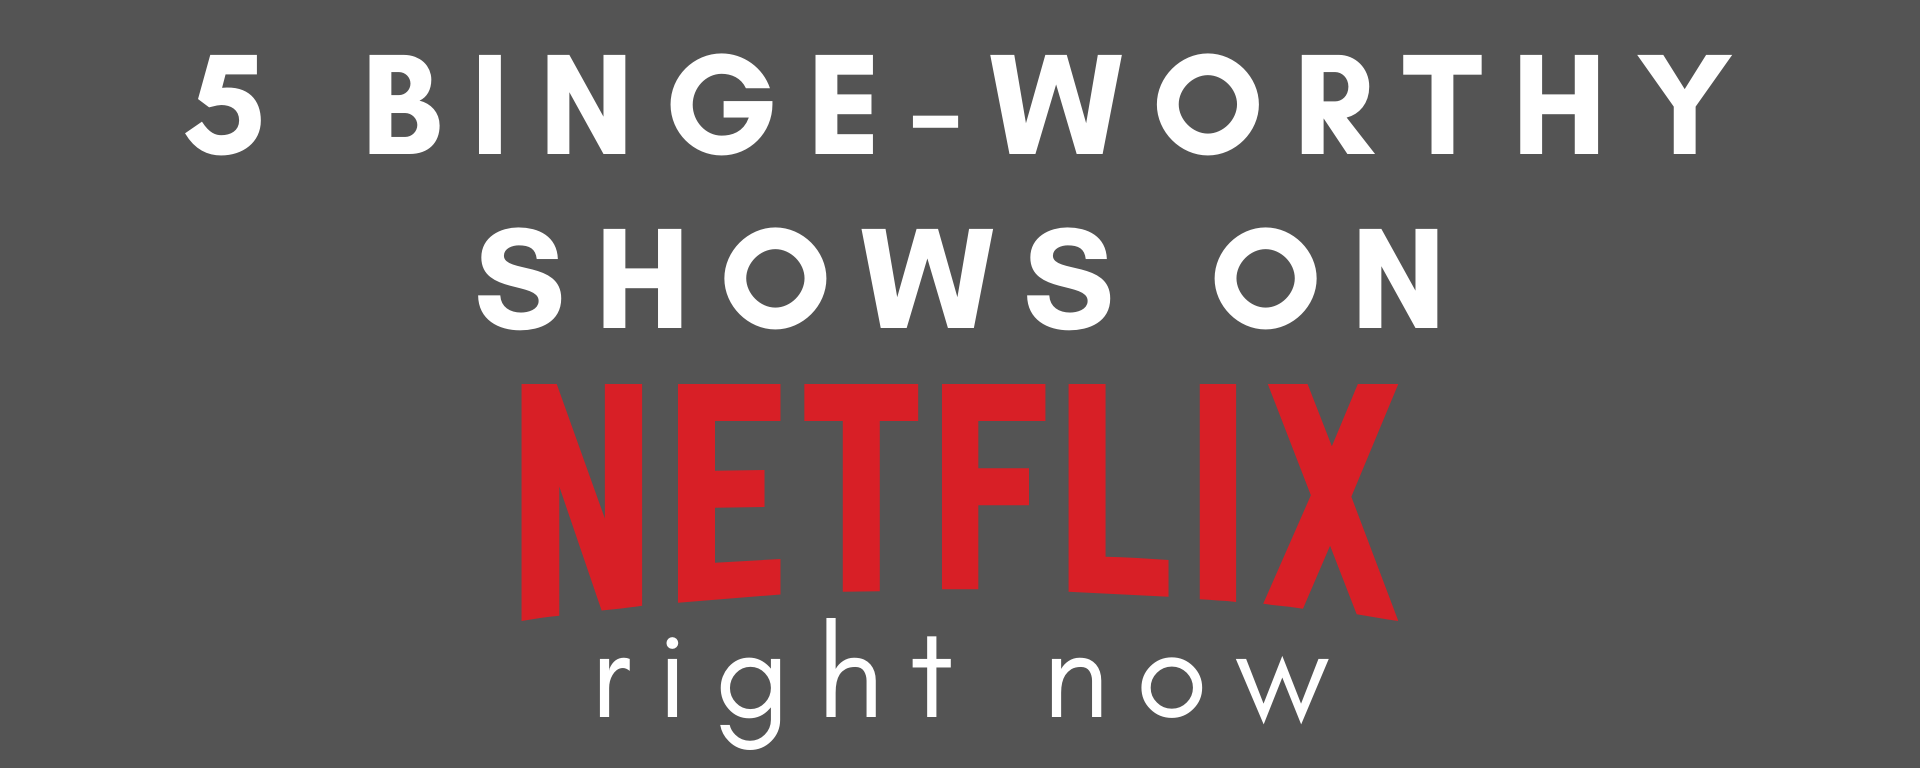 "A grey background with the text ""5 Binge-Worthy Shows on Netflix Right Now"""